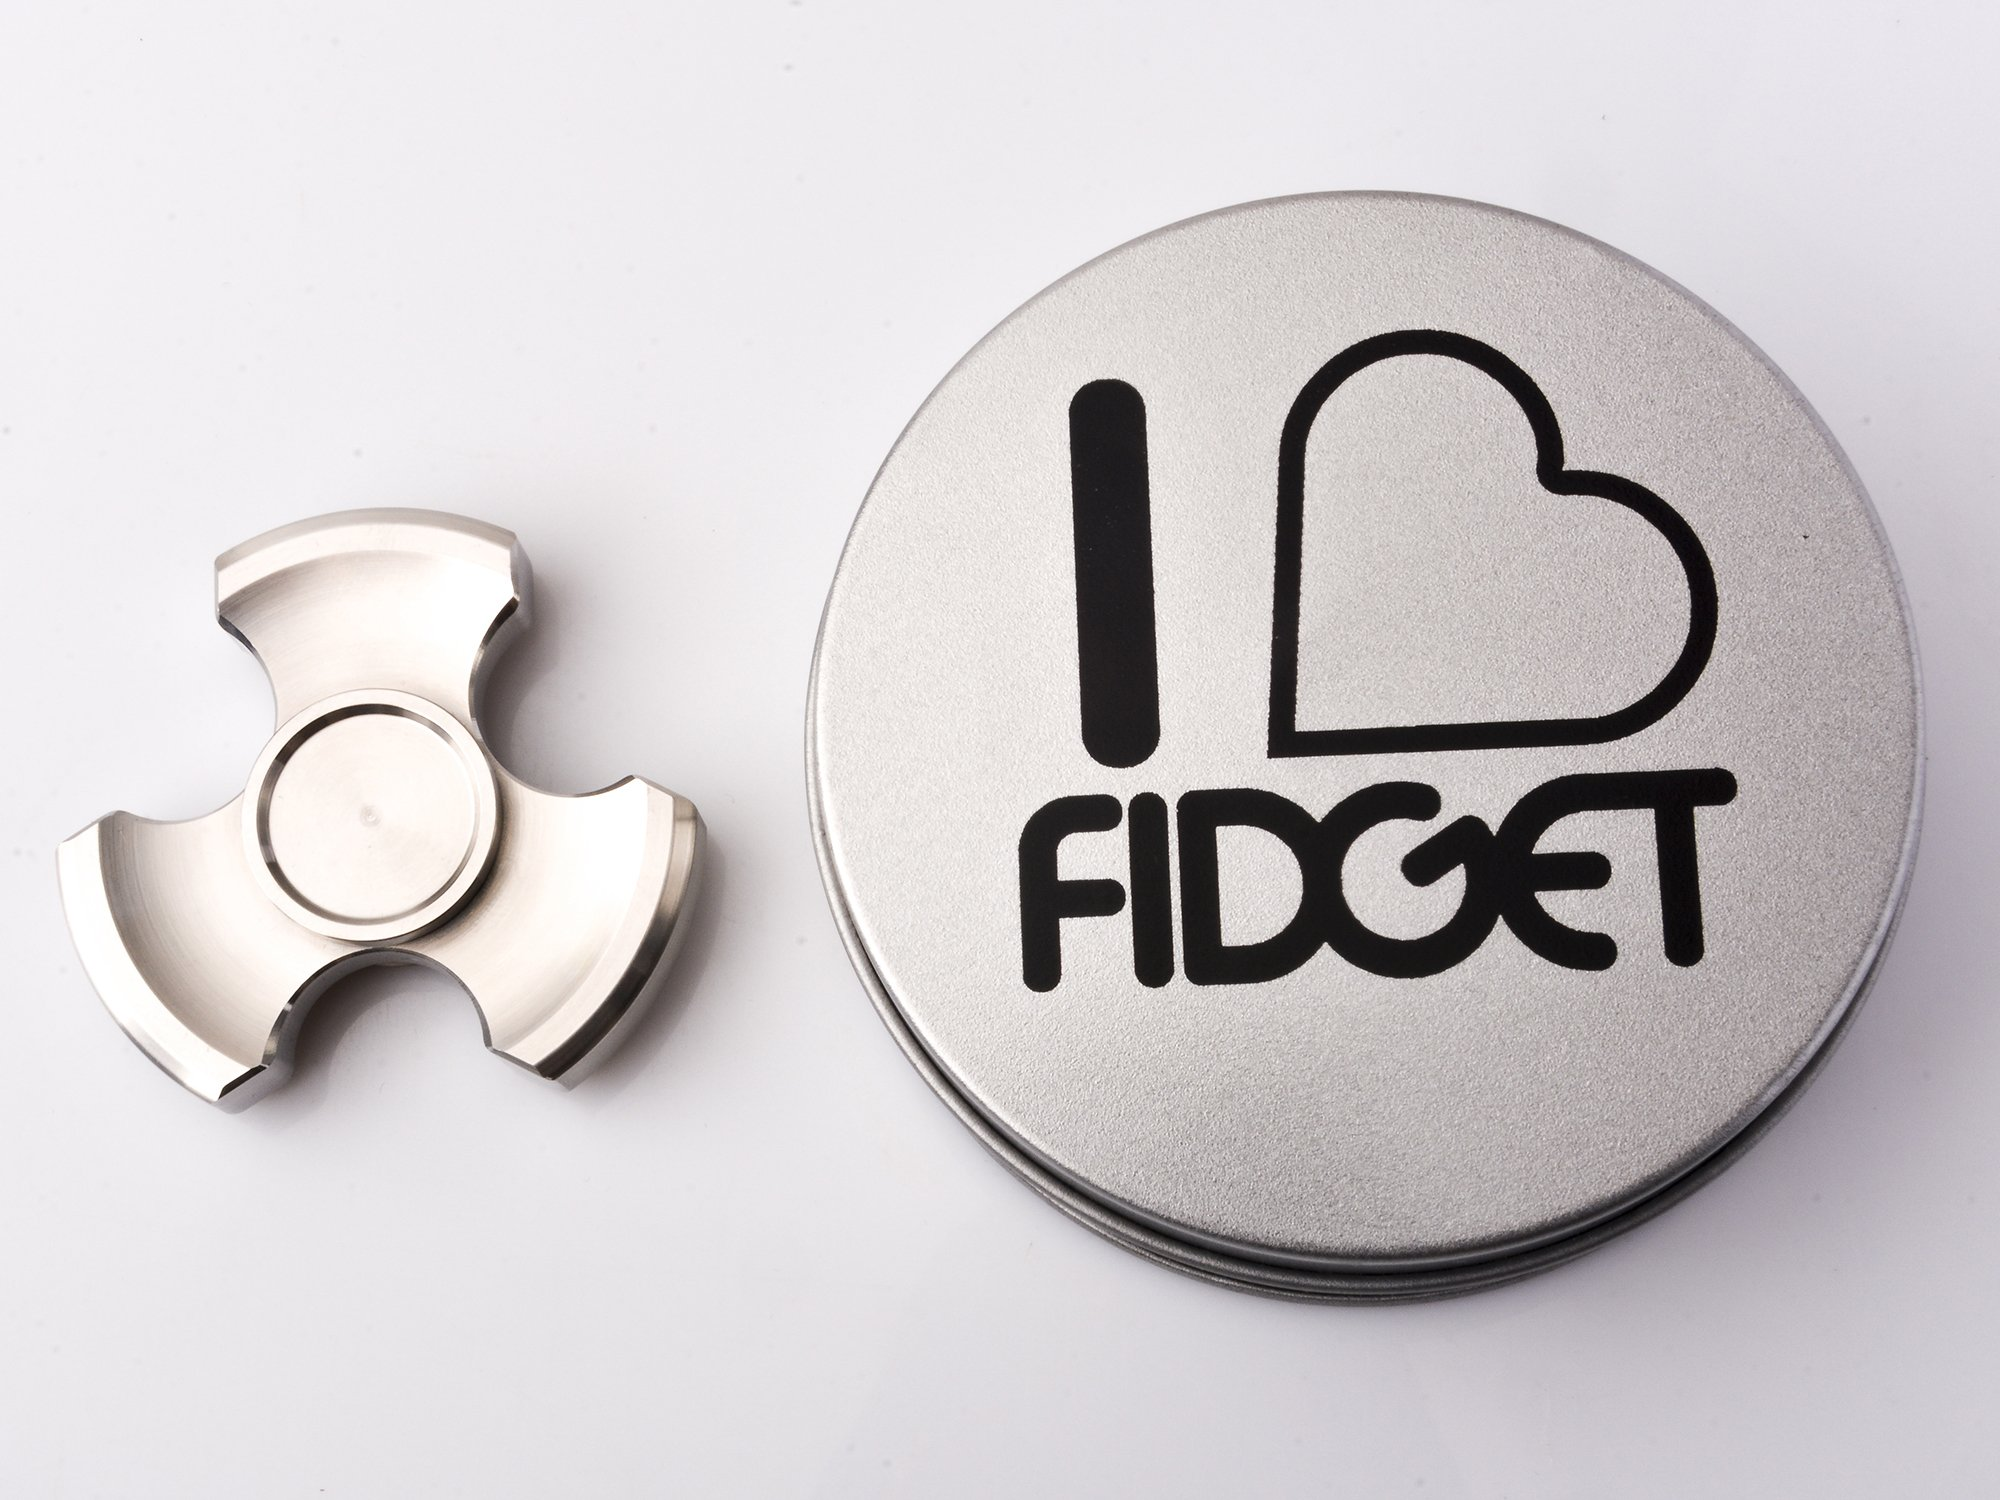 ILoveFidget Fidget Spinner, Best Stainless Steel Hand Spinner EDC Toy, R188 bearing spins up to 8 mins, relieve stress ADHD ADD Austism anxiety boredom, improve focus attention (Tri Bar) by ILoveFidget (Image #5)